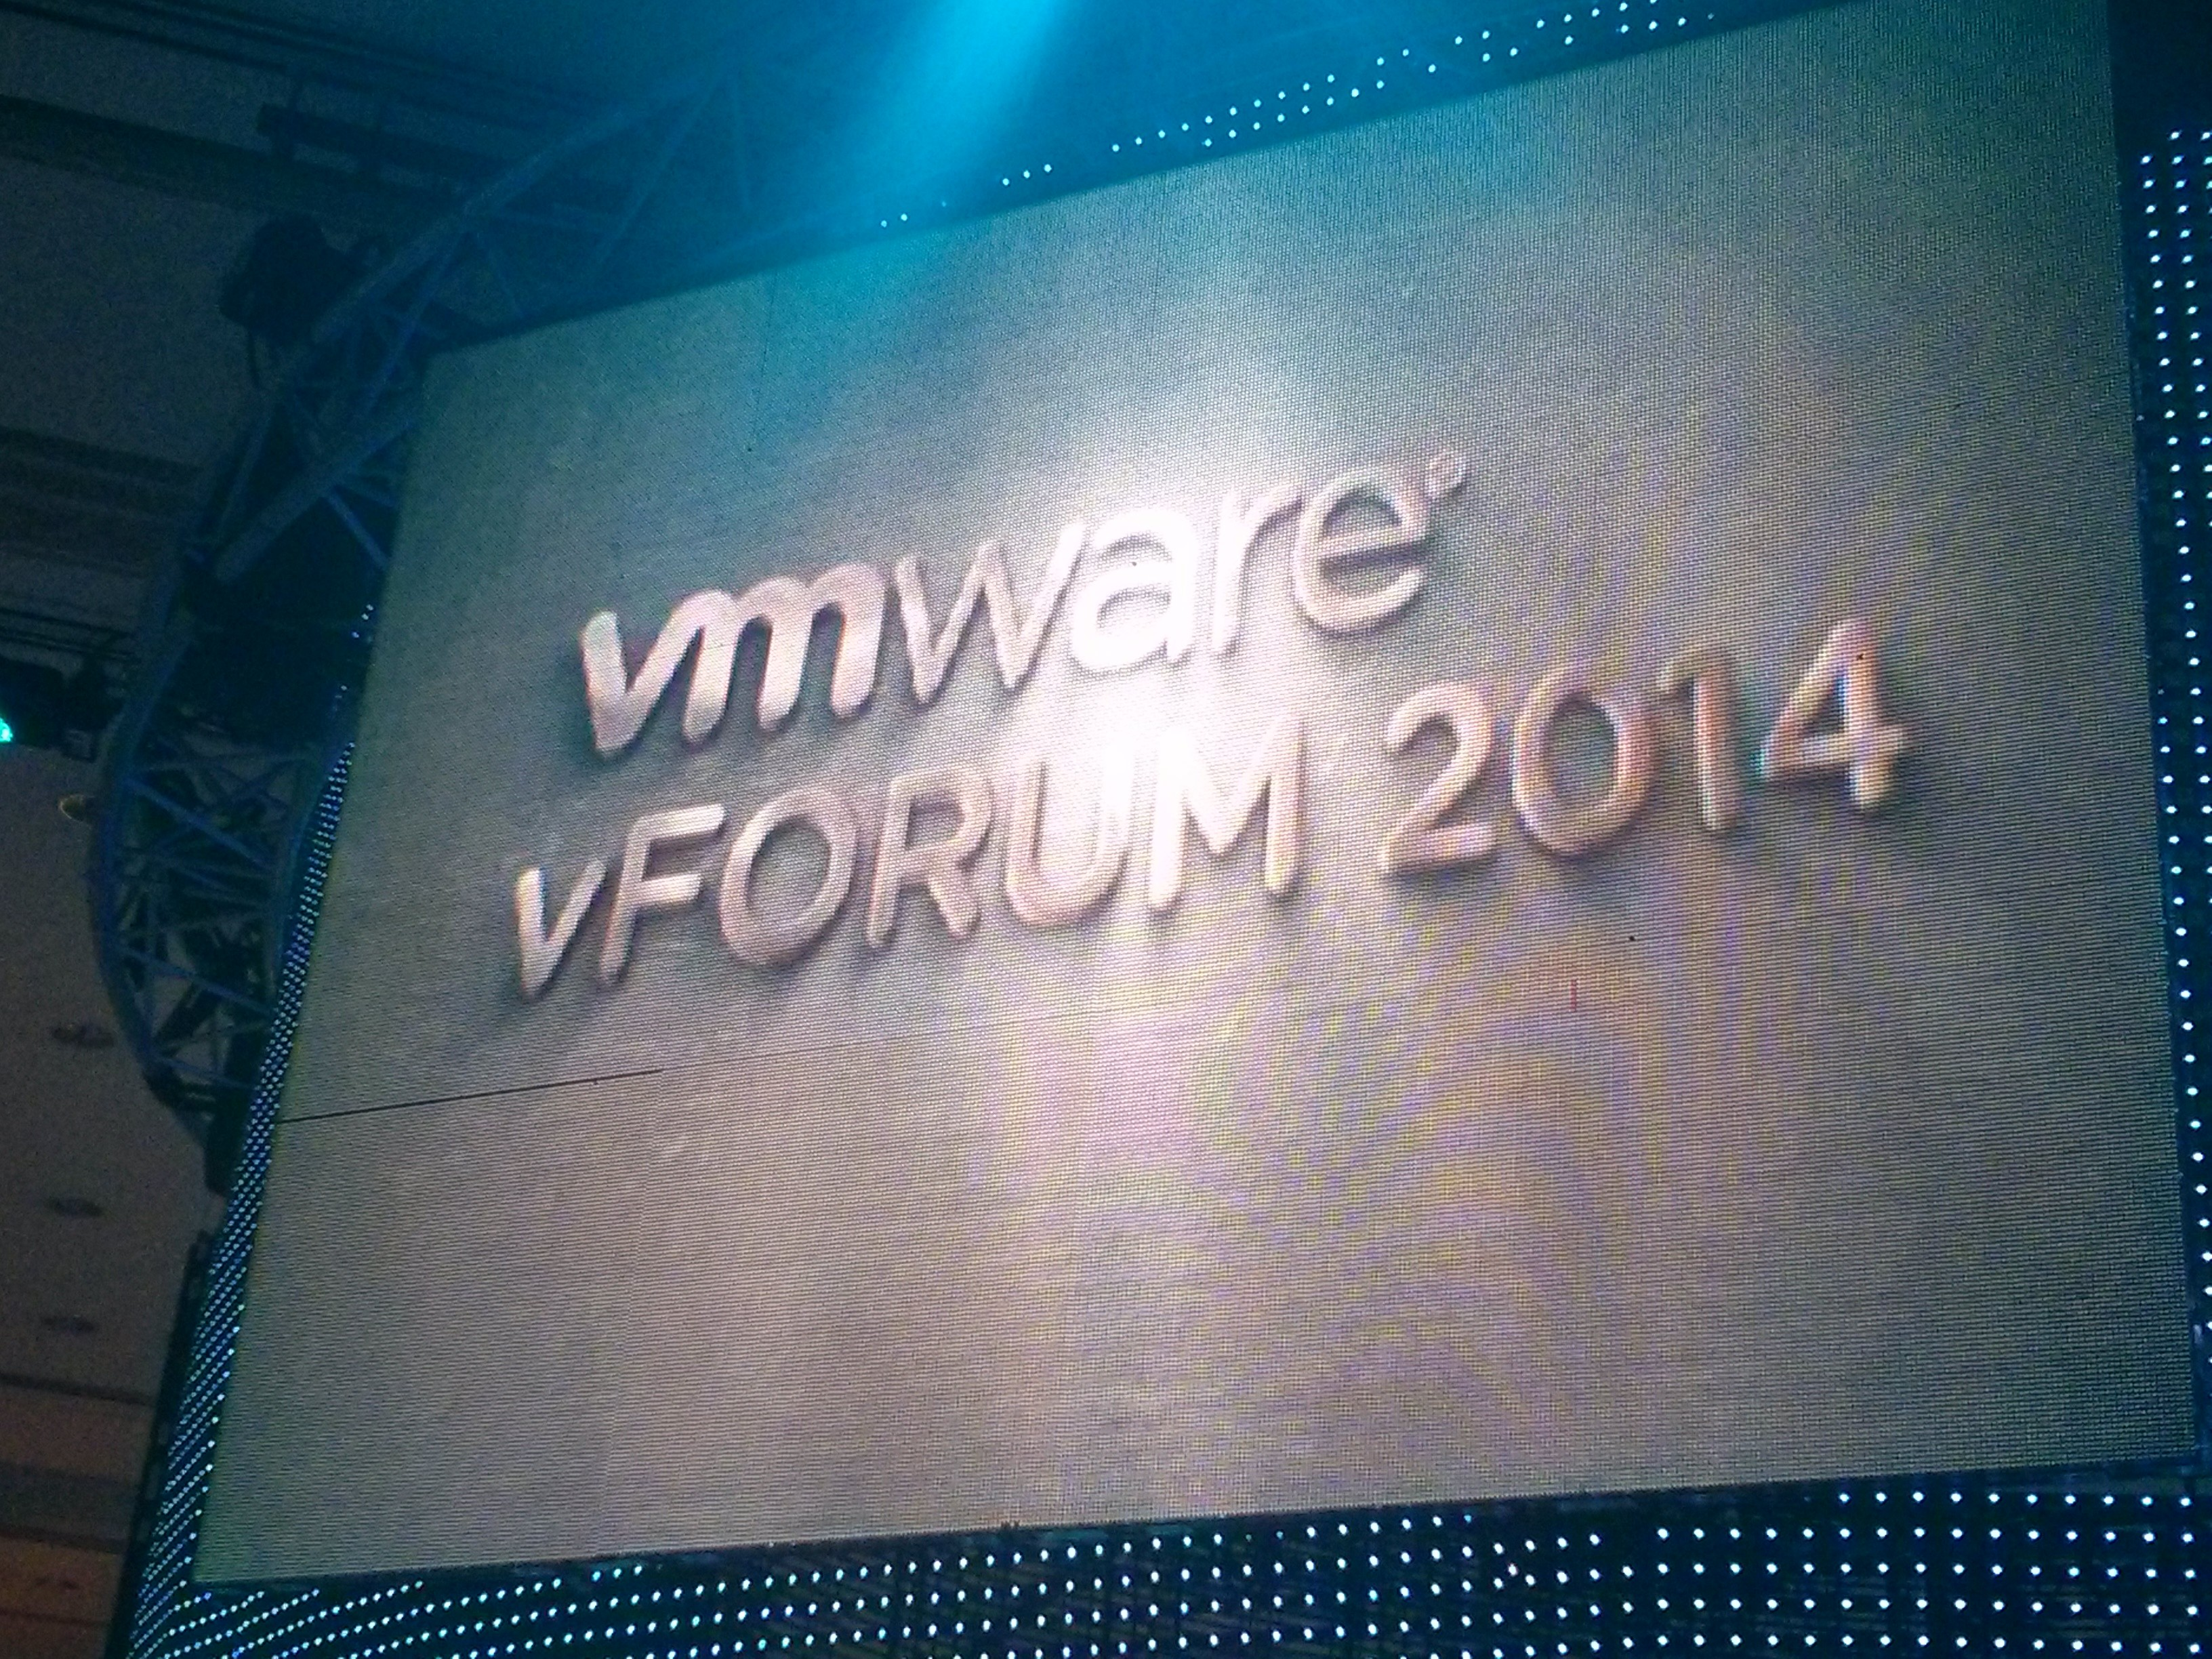 VMware vForum 2014 America Group